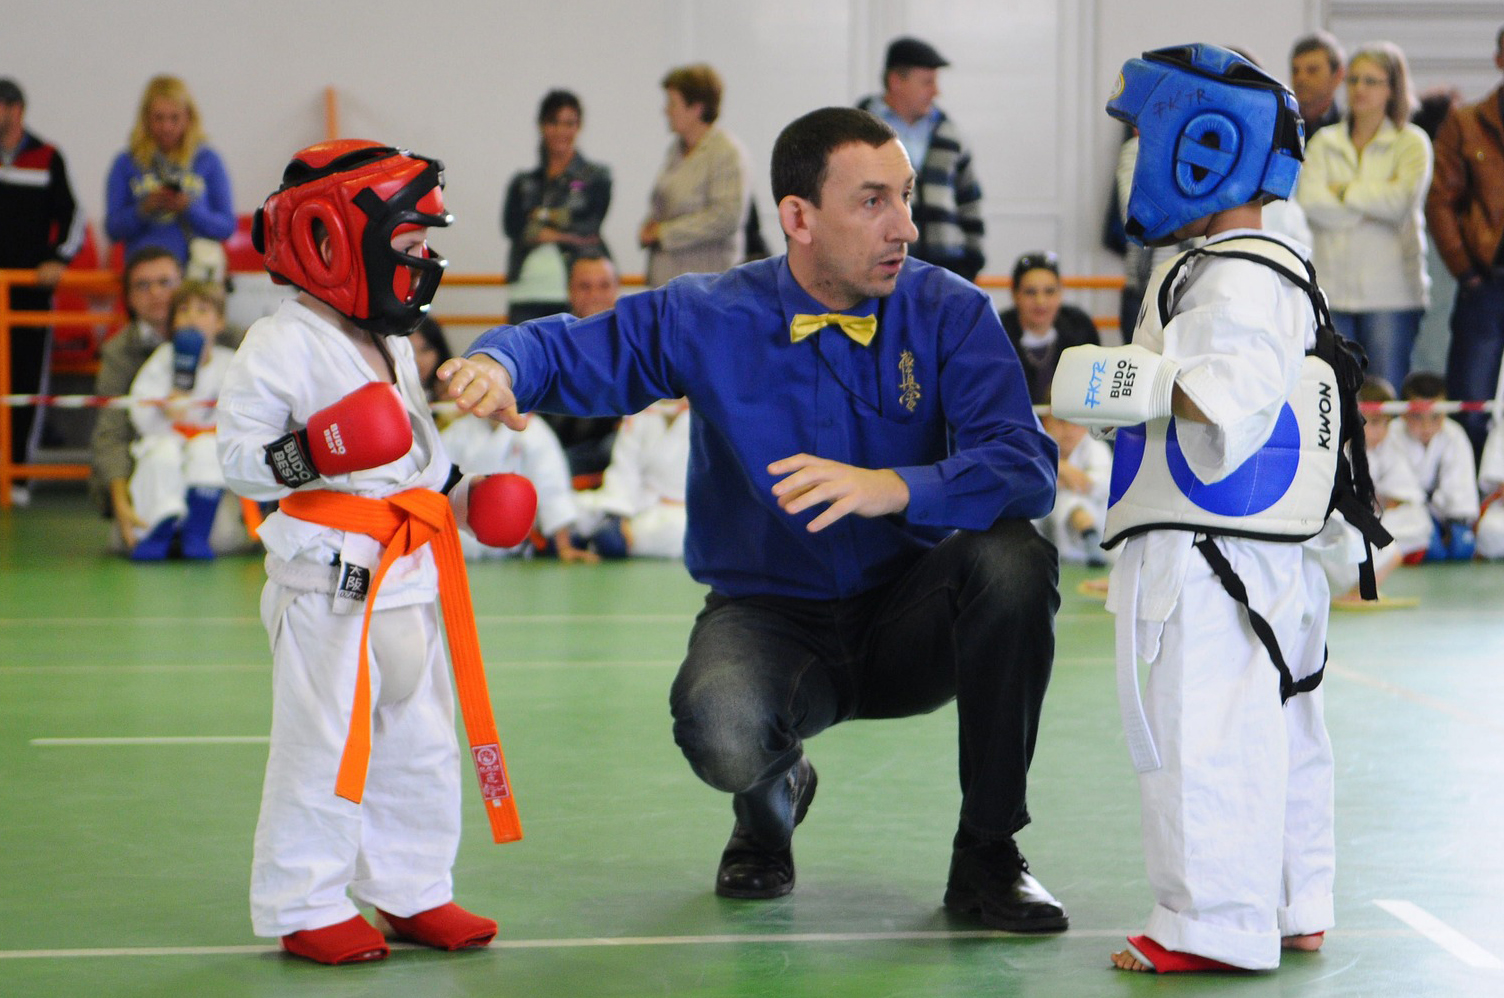 martial arts tournament for kids